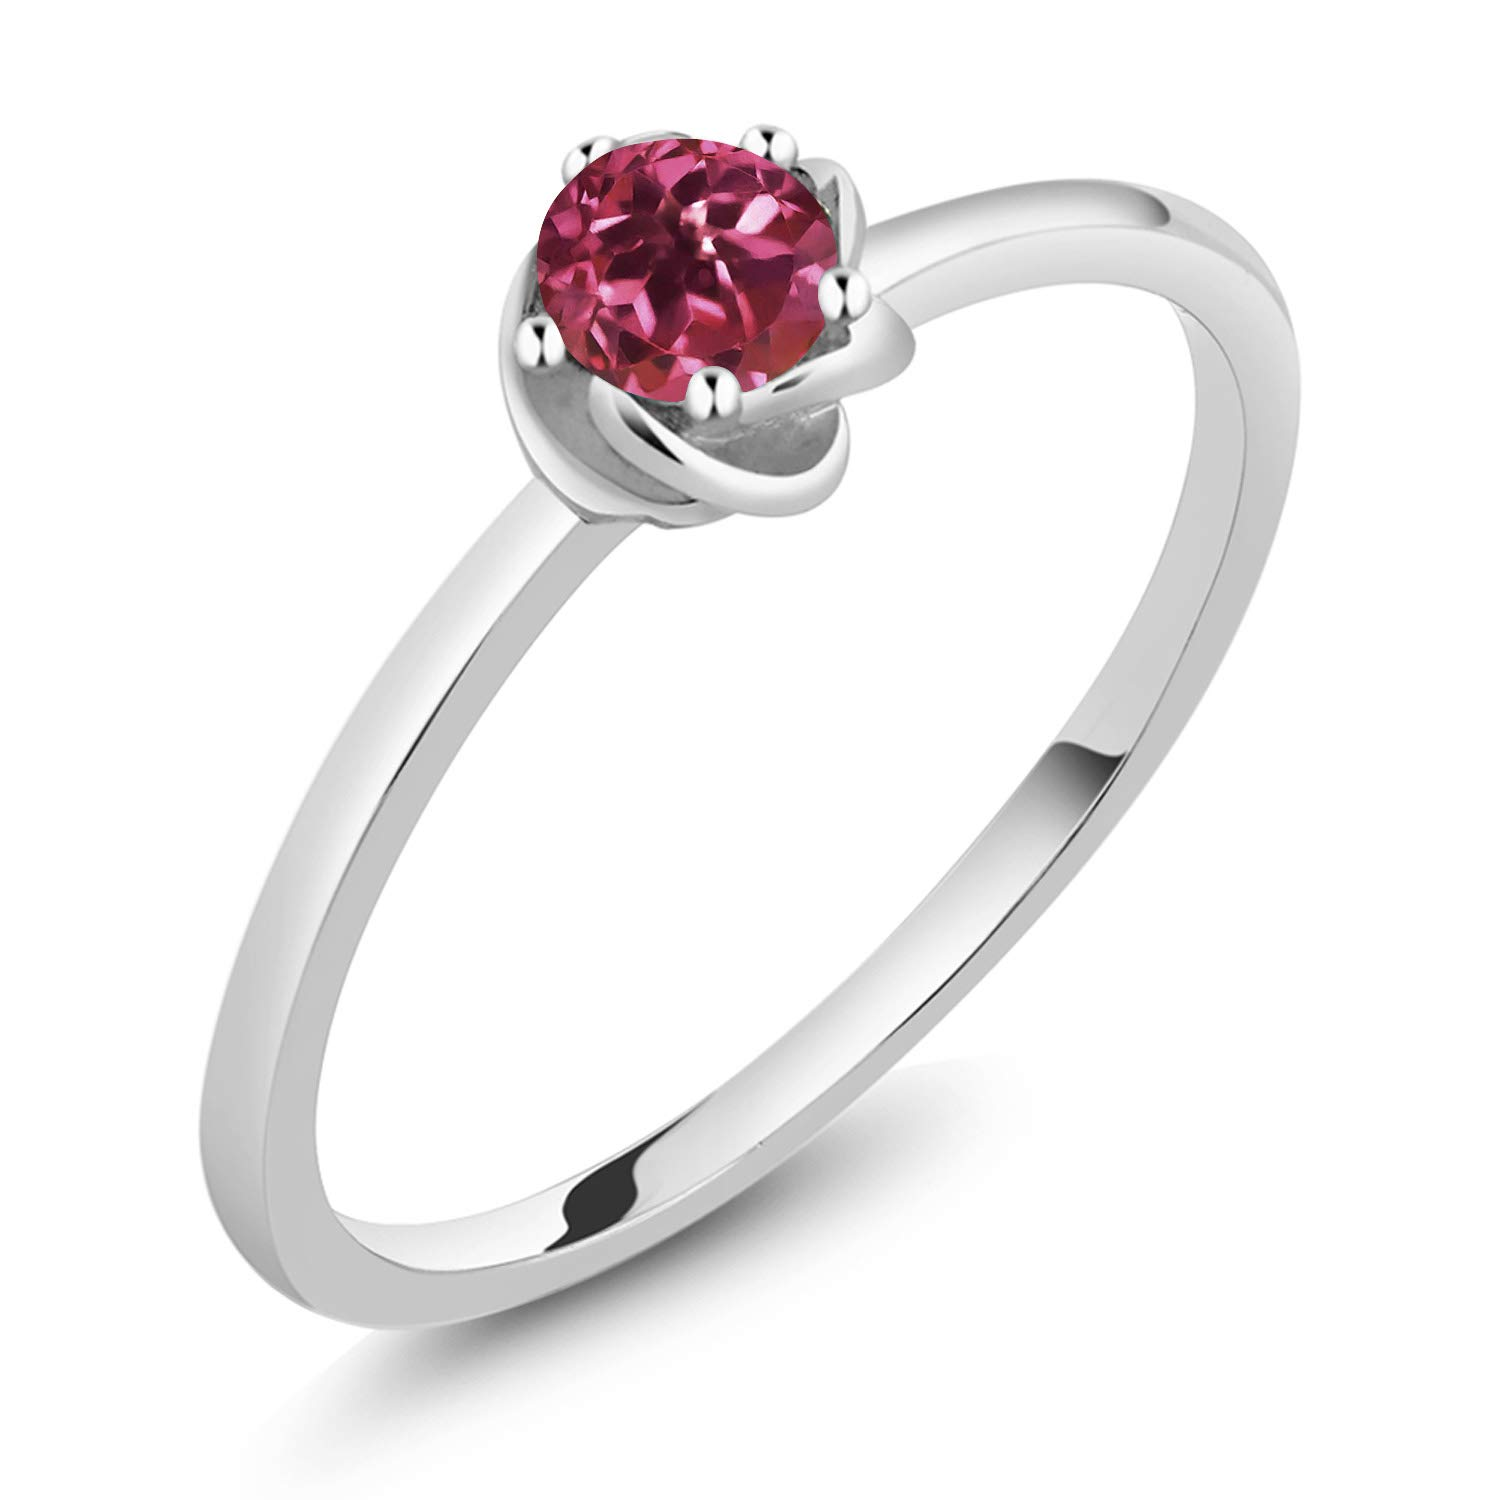 Gem Stone King 10K Solid White Gold Pink Tourmaline Women Solitaire Engagement Anniversary Ring (0.15 Ctw Round Cut, Available in size 5, 6, 7, 8, 9) by Gem Stone King